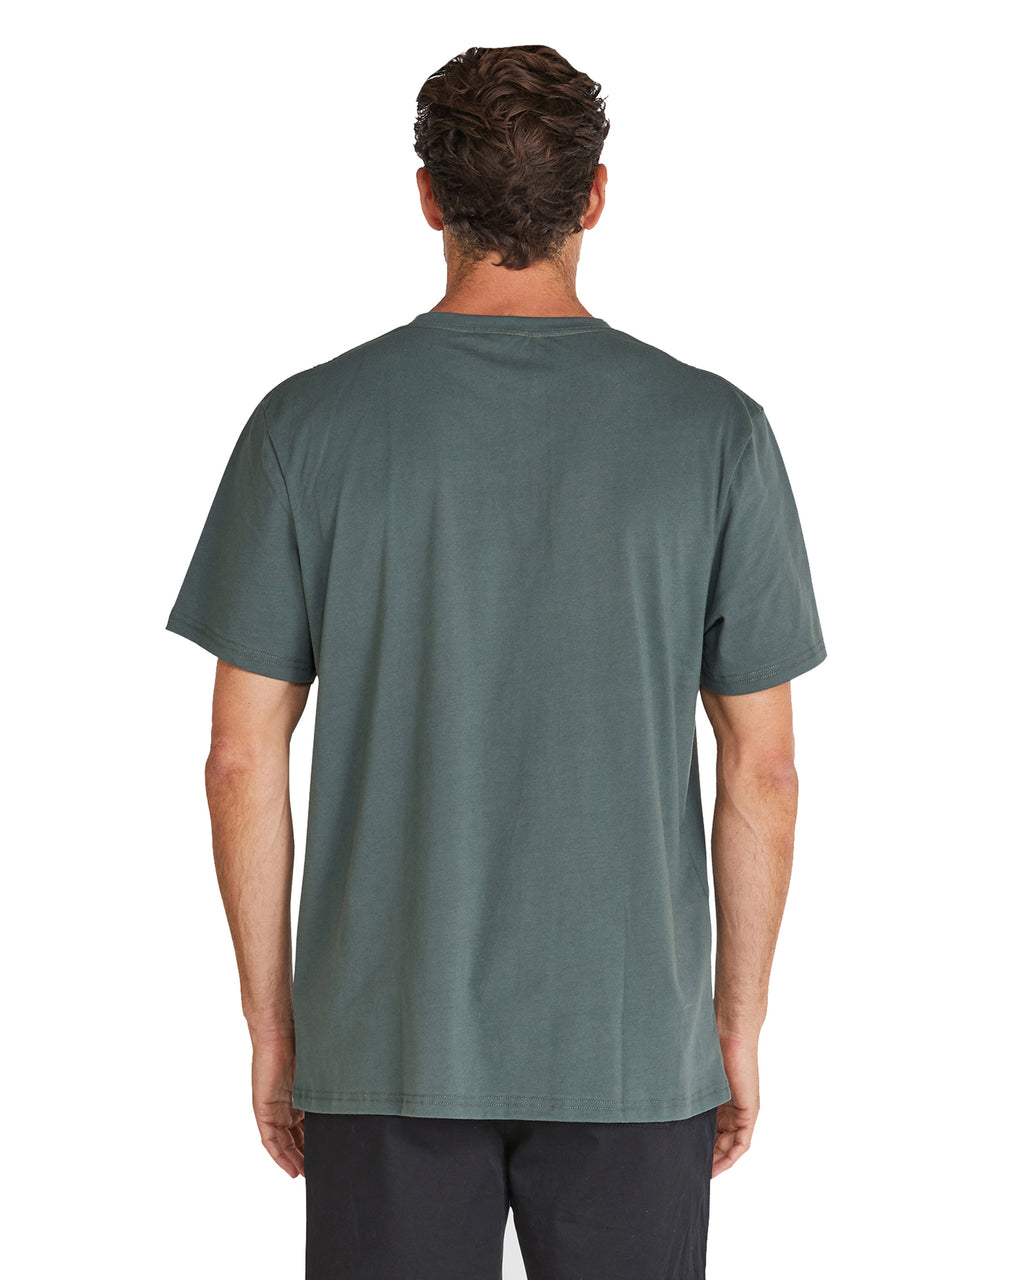 T's - Staple Tee - Green